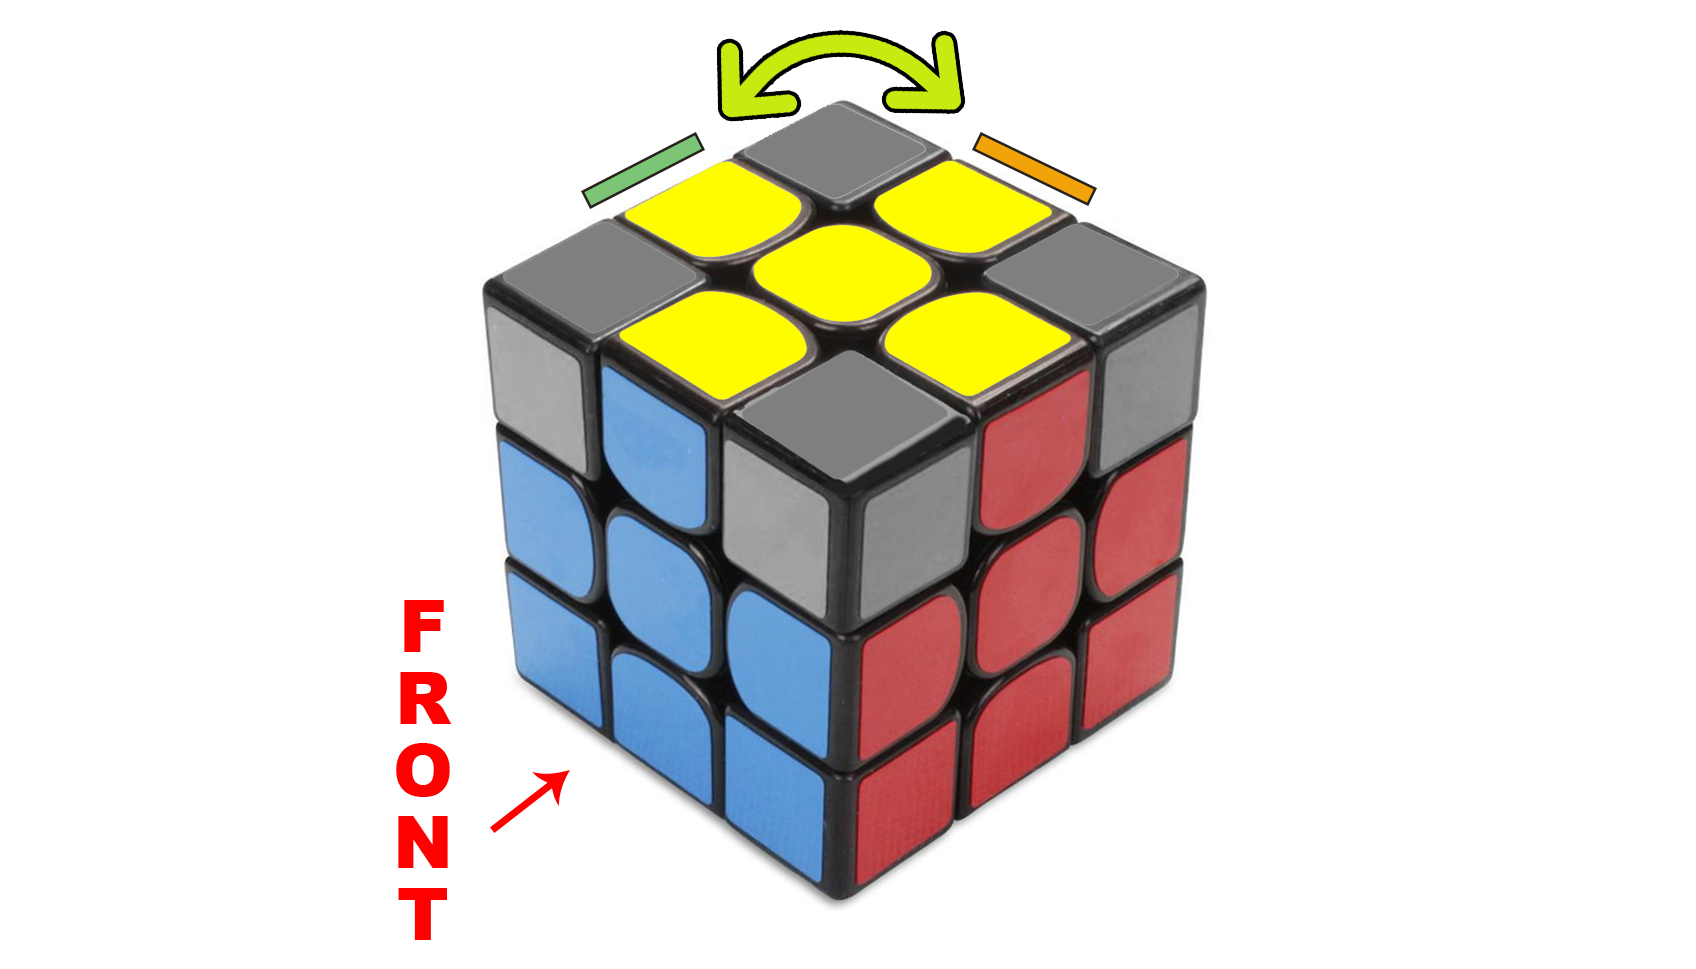 How to solve a Rubik's 3x3 - Step 4 - The Final Layer - Step 4d